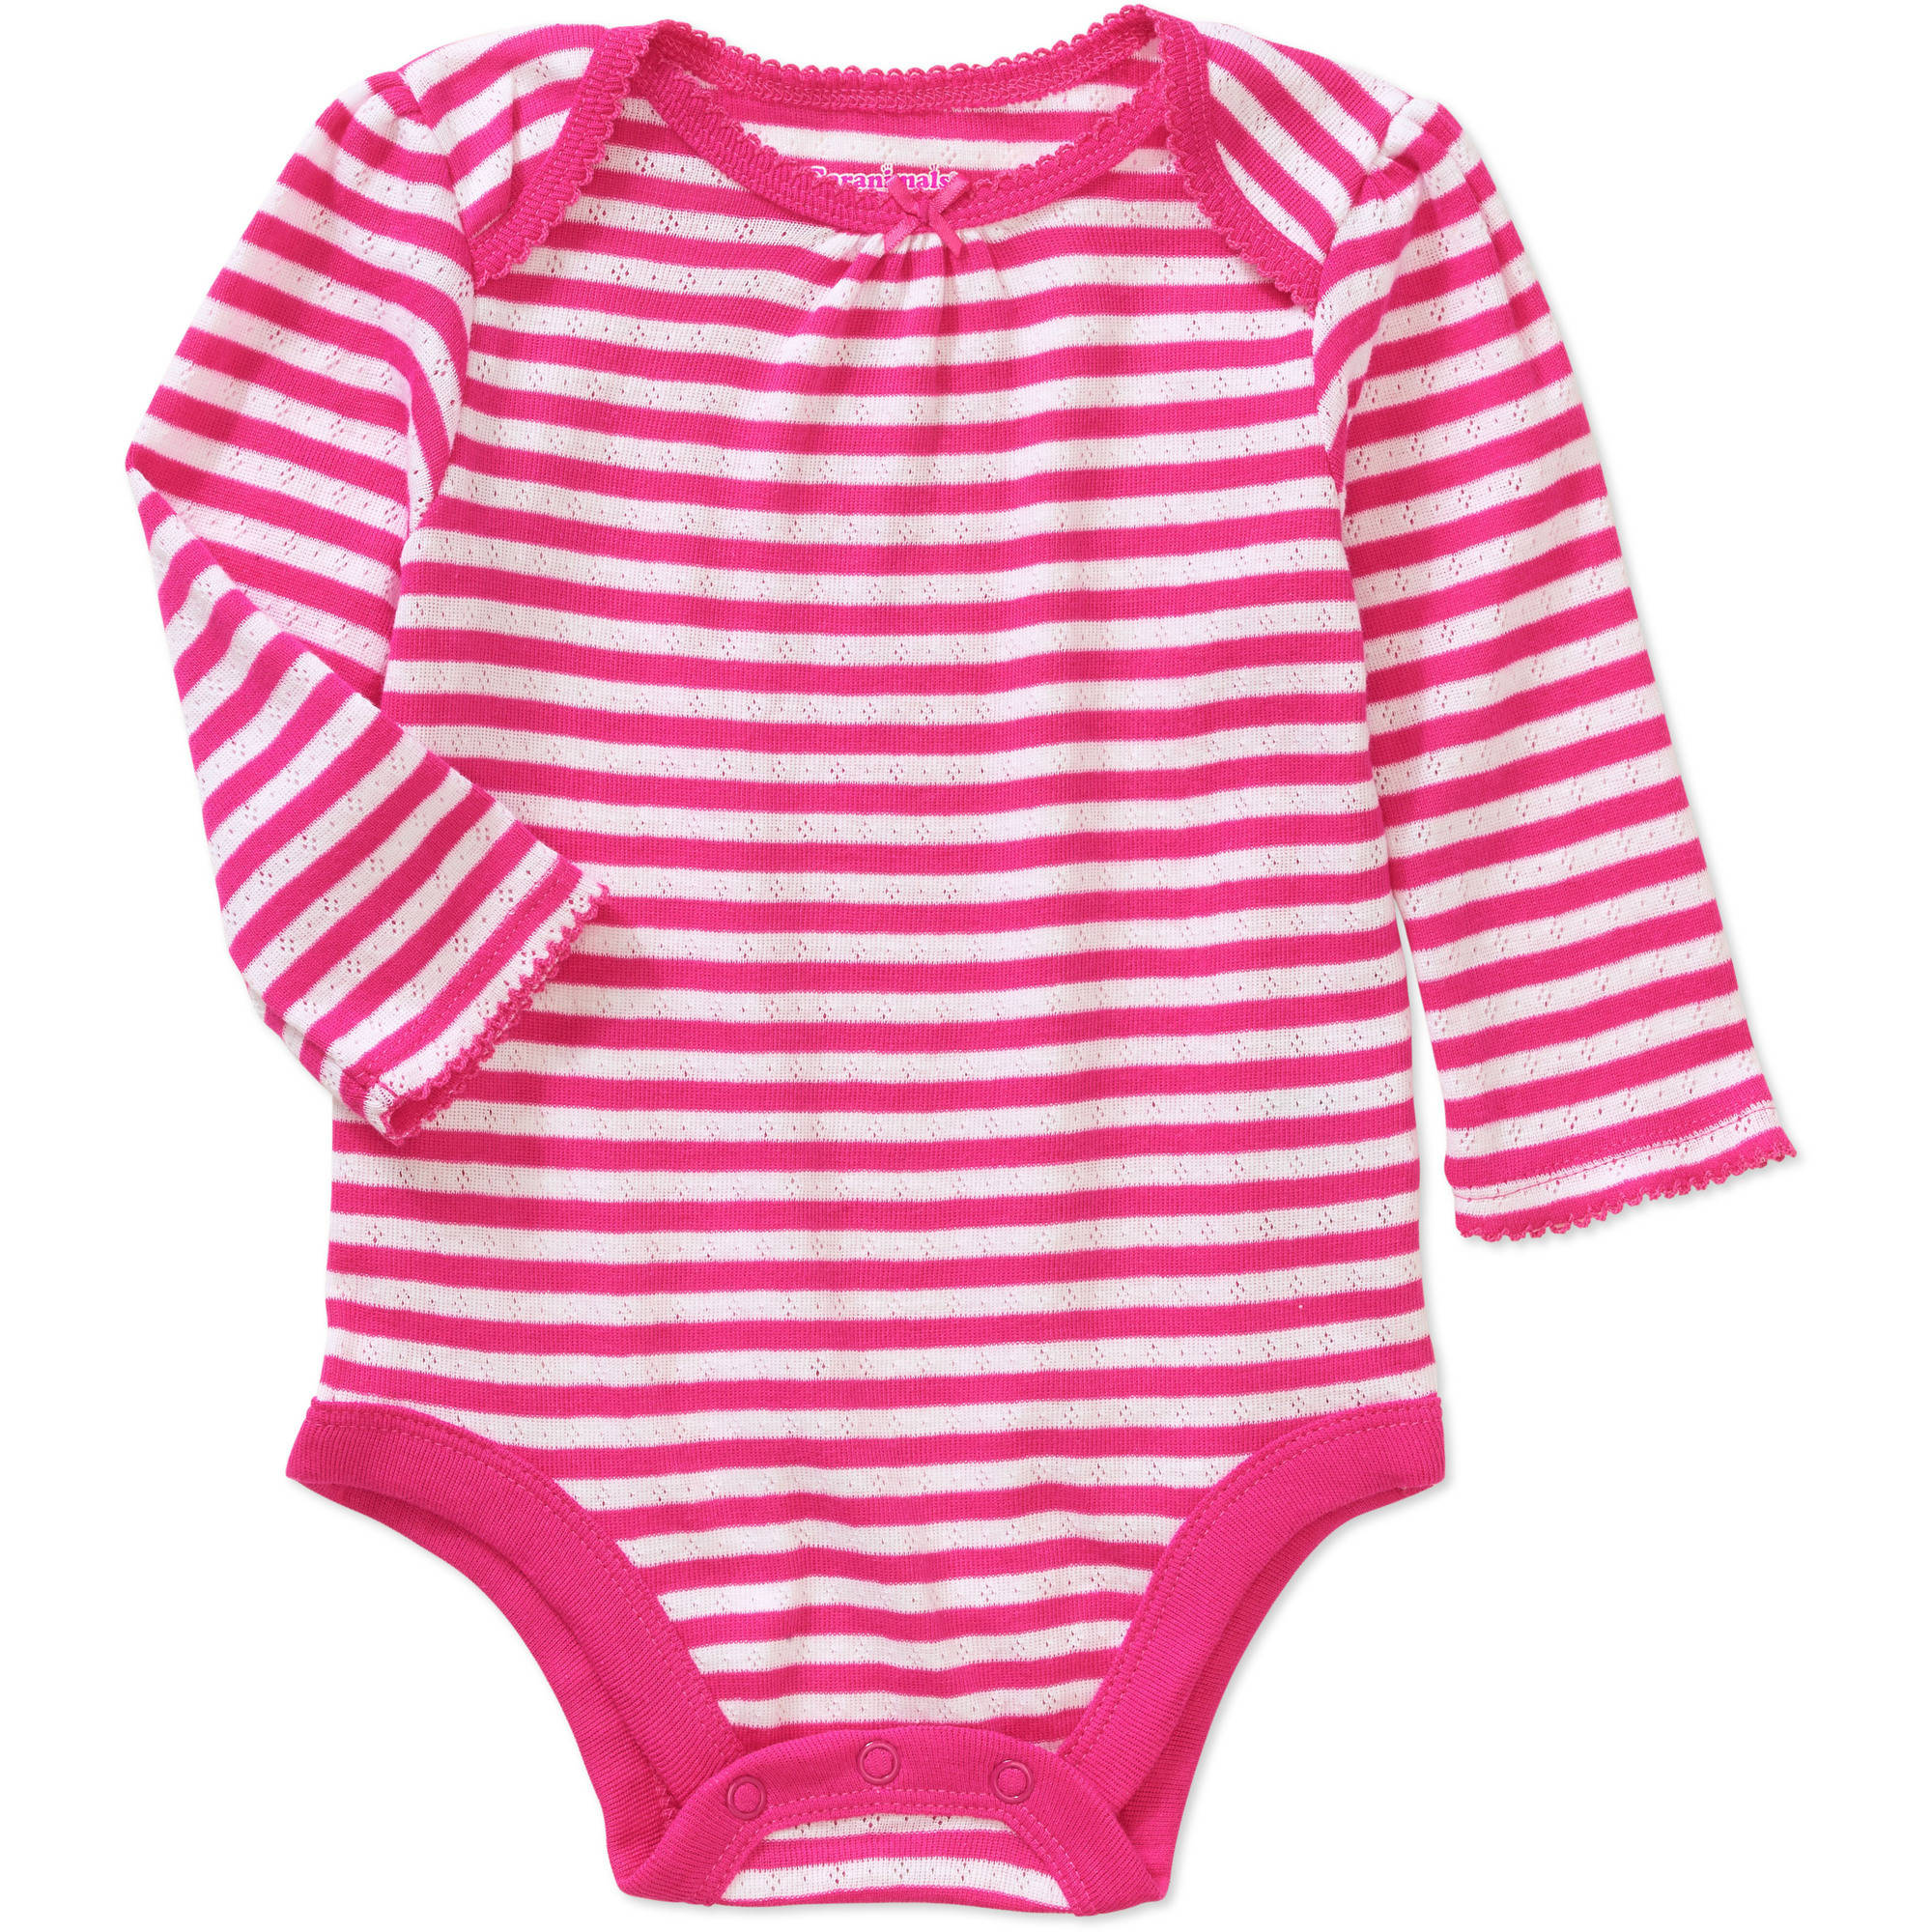 Garanimals Baby Girl Long Sleeve Striped Pointelle Bodysuit